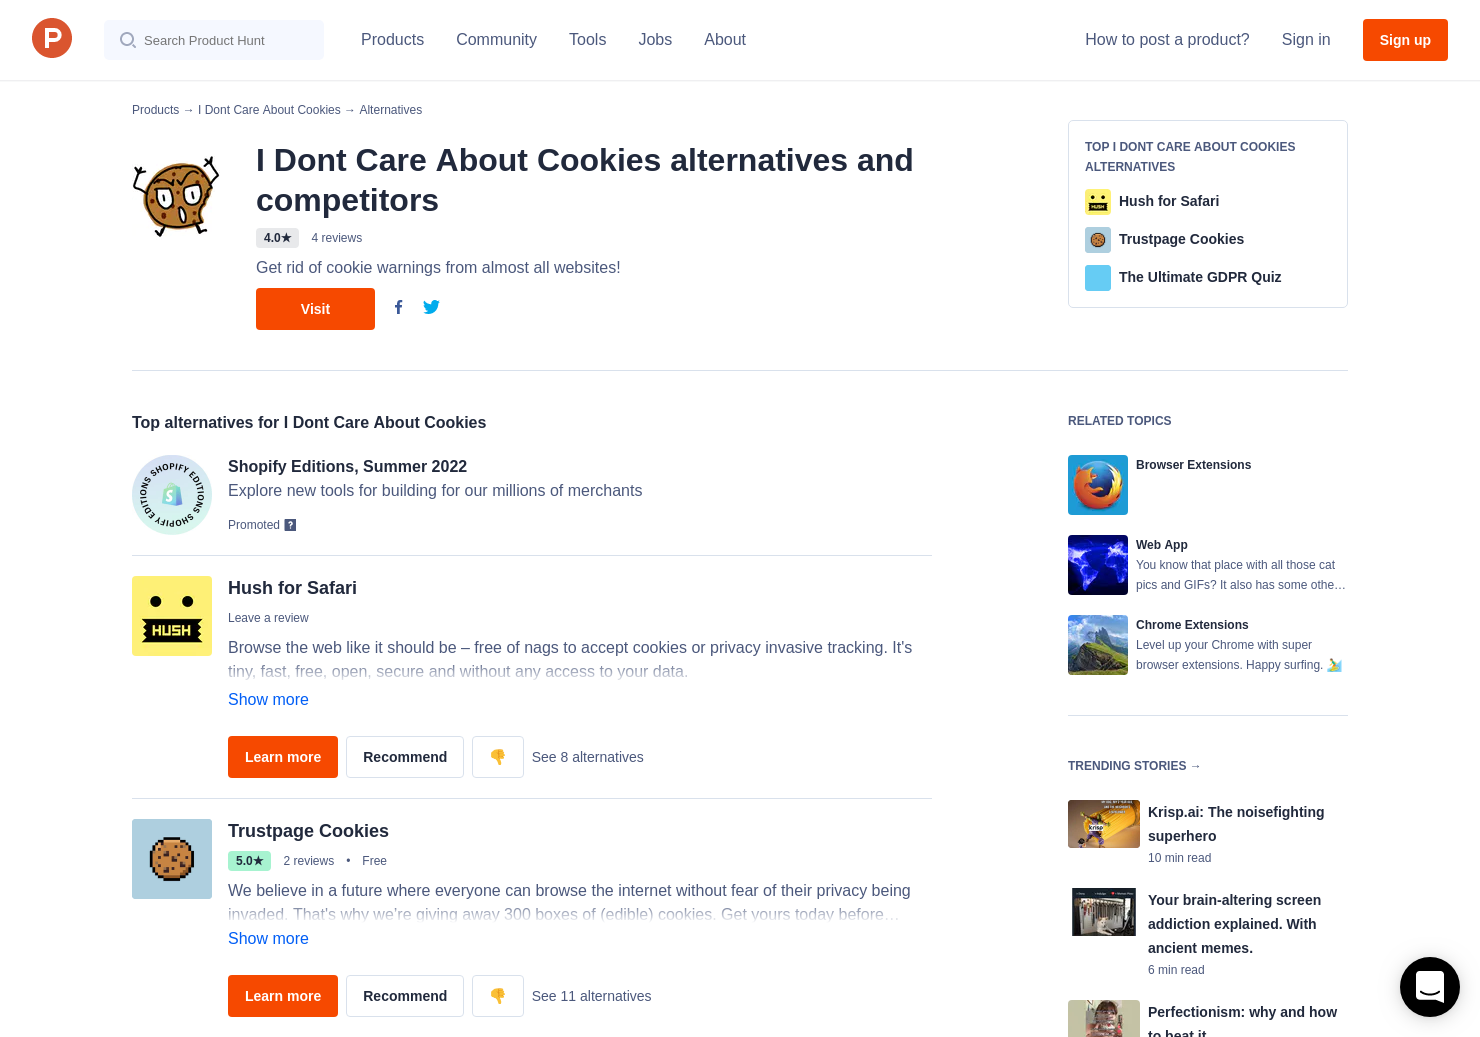 5 Alternatives to I Don't Care About Cookies for Chrome Extensions